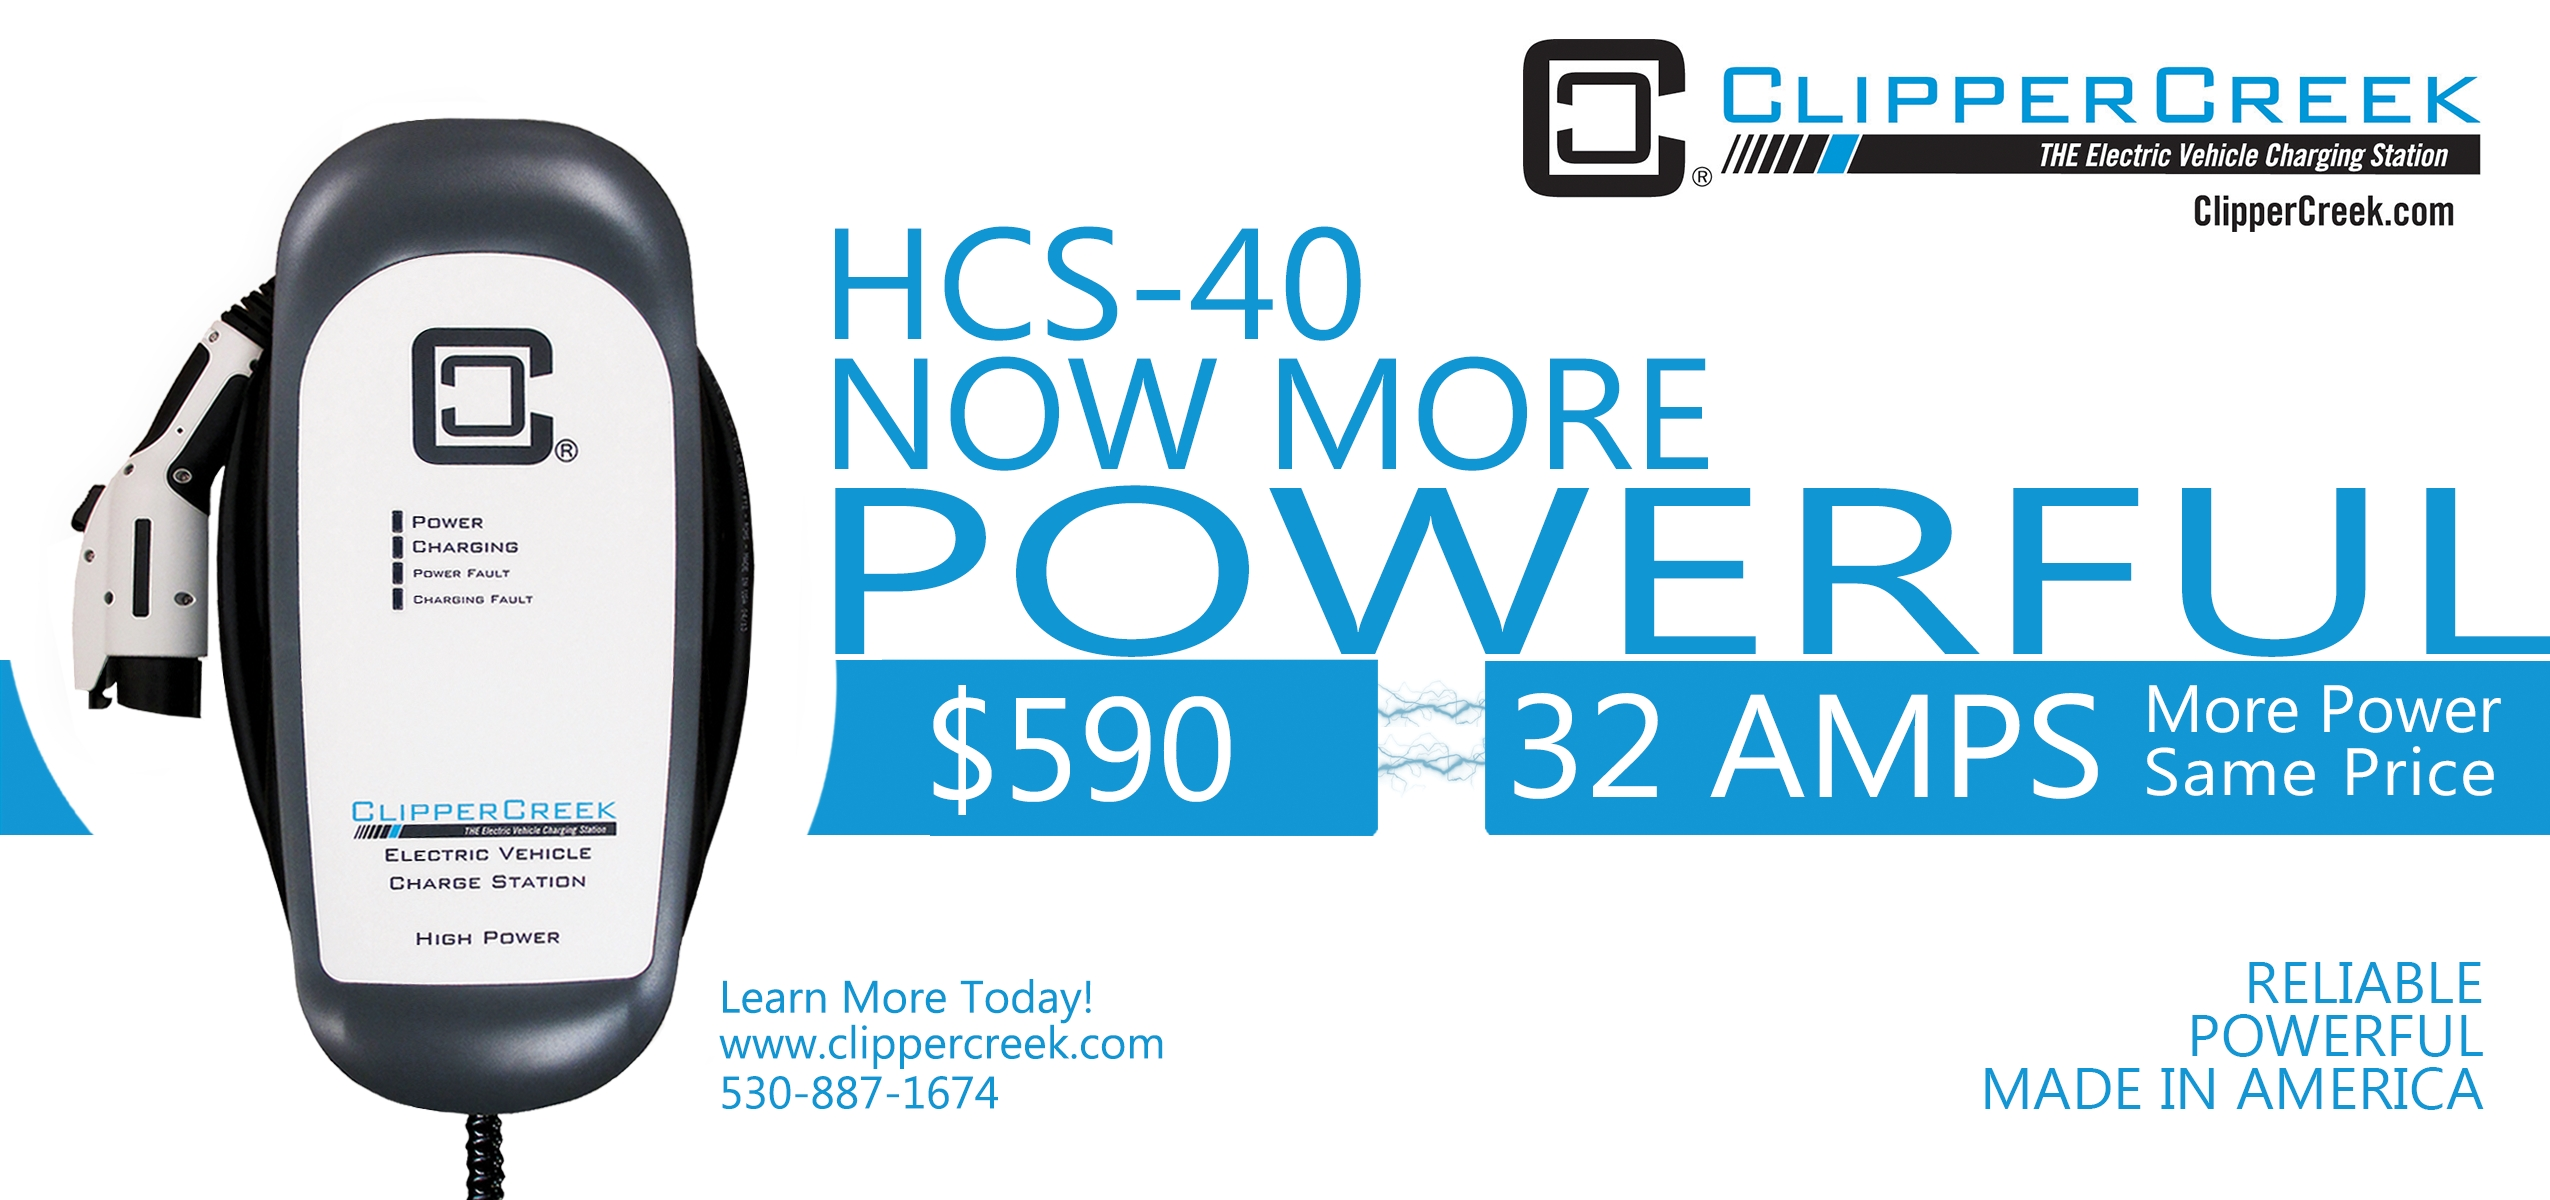 ClipperCreek Launches 32 Amp Station – More Power, Same $590 Price ...